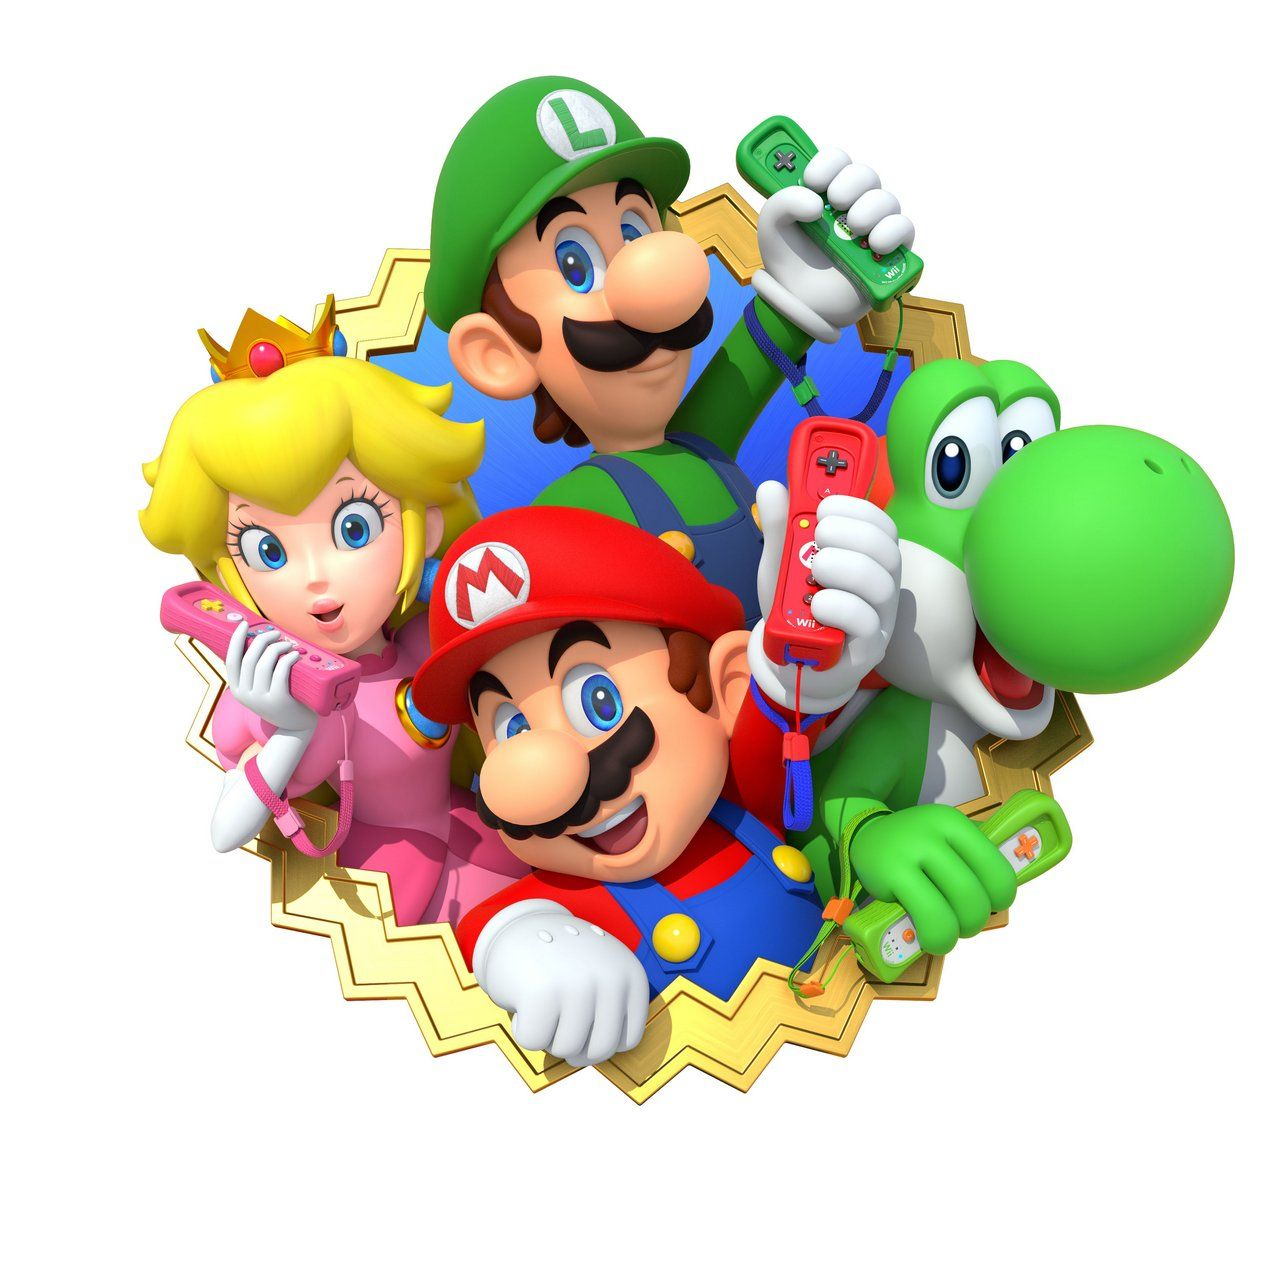 Nintendo Has Some Unannounced Wii U Games That Will Launch Before April 2016